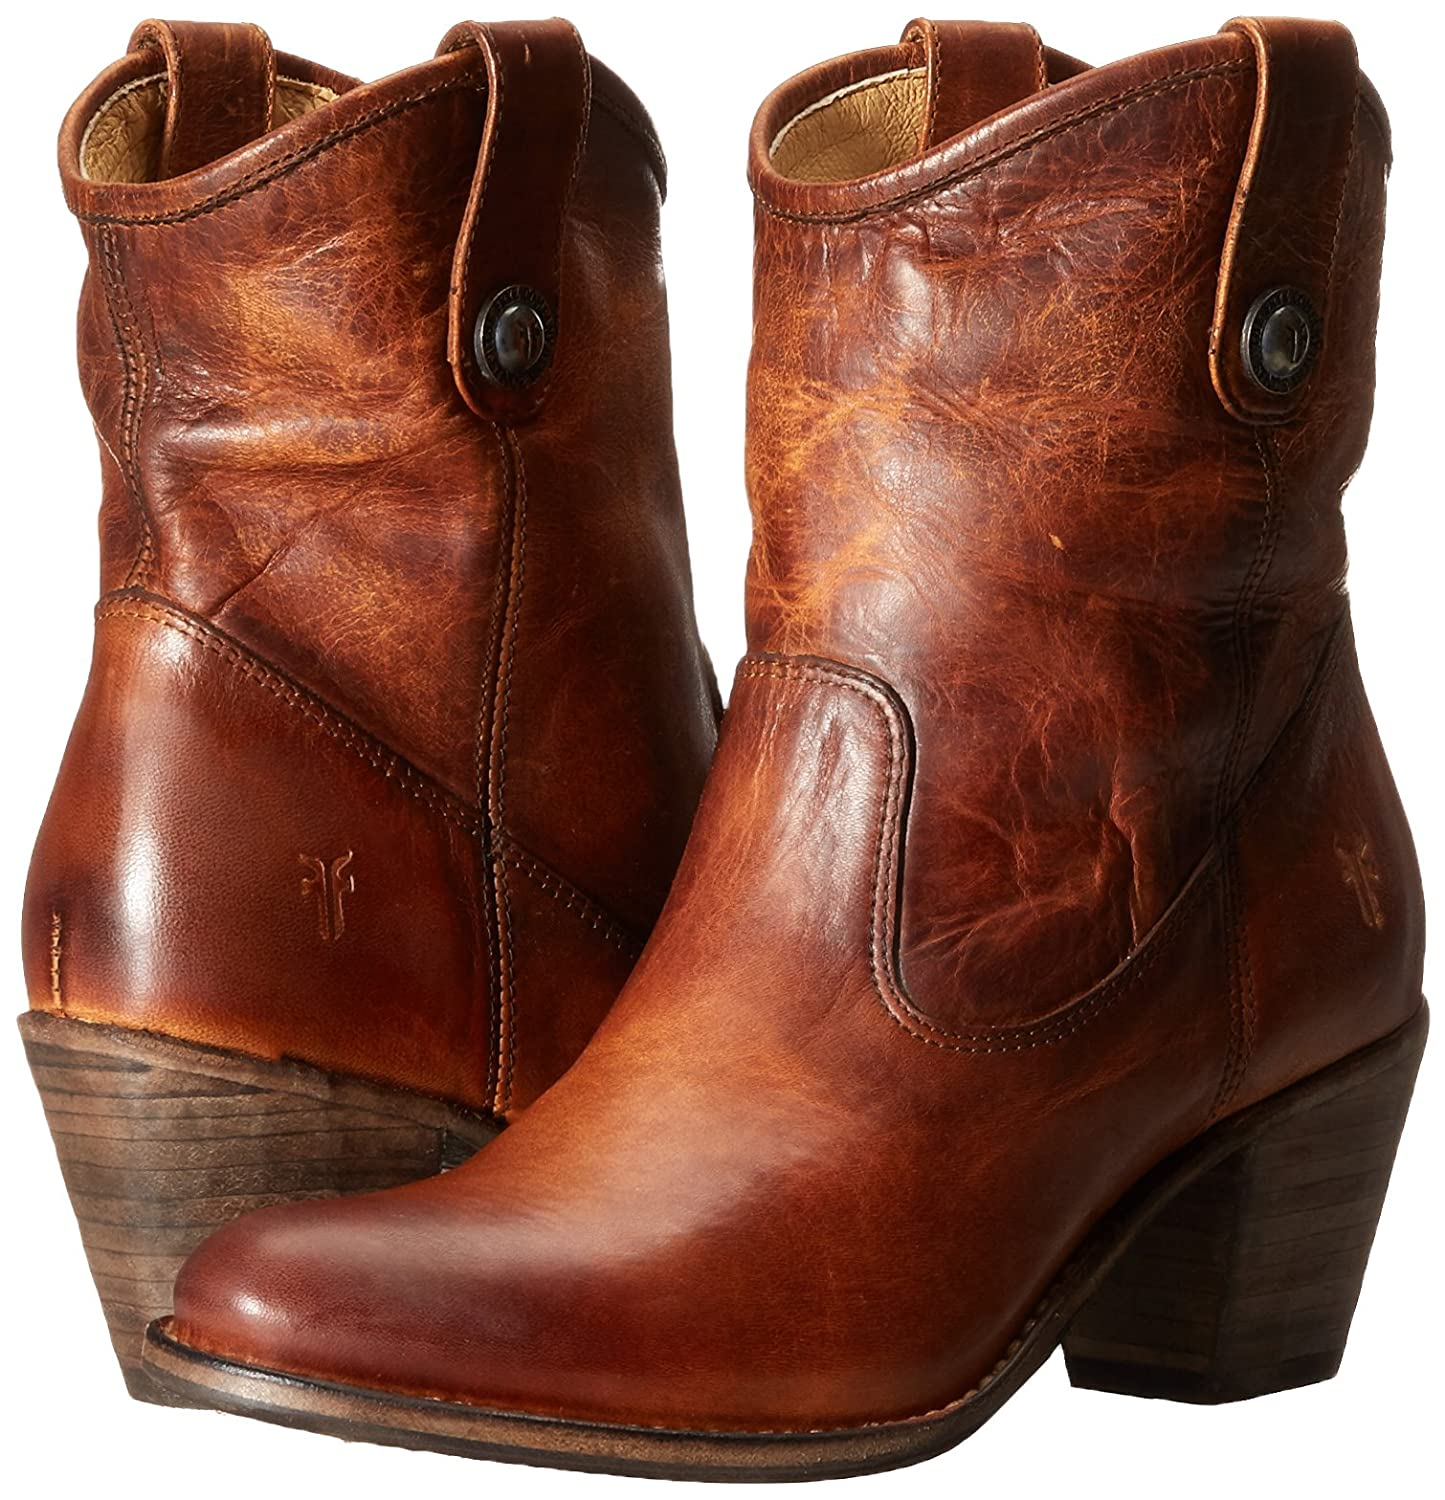 FRYE Women's Jackie Button Short Boot B00TPUMRL6 7.5 B(M) US|Cognac-76593